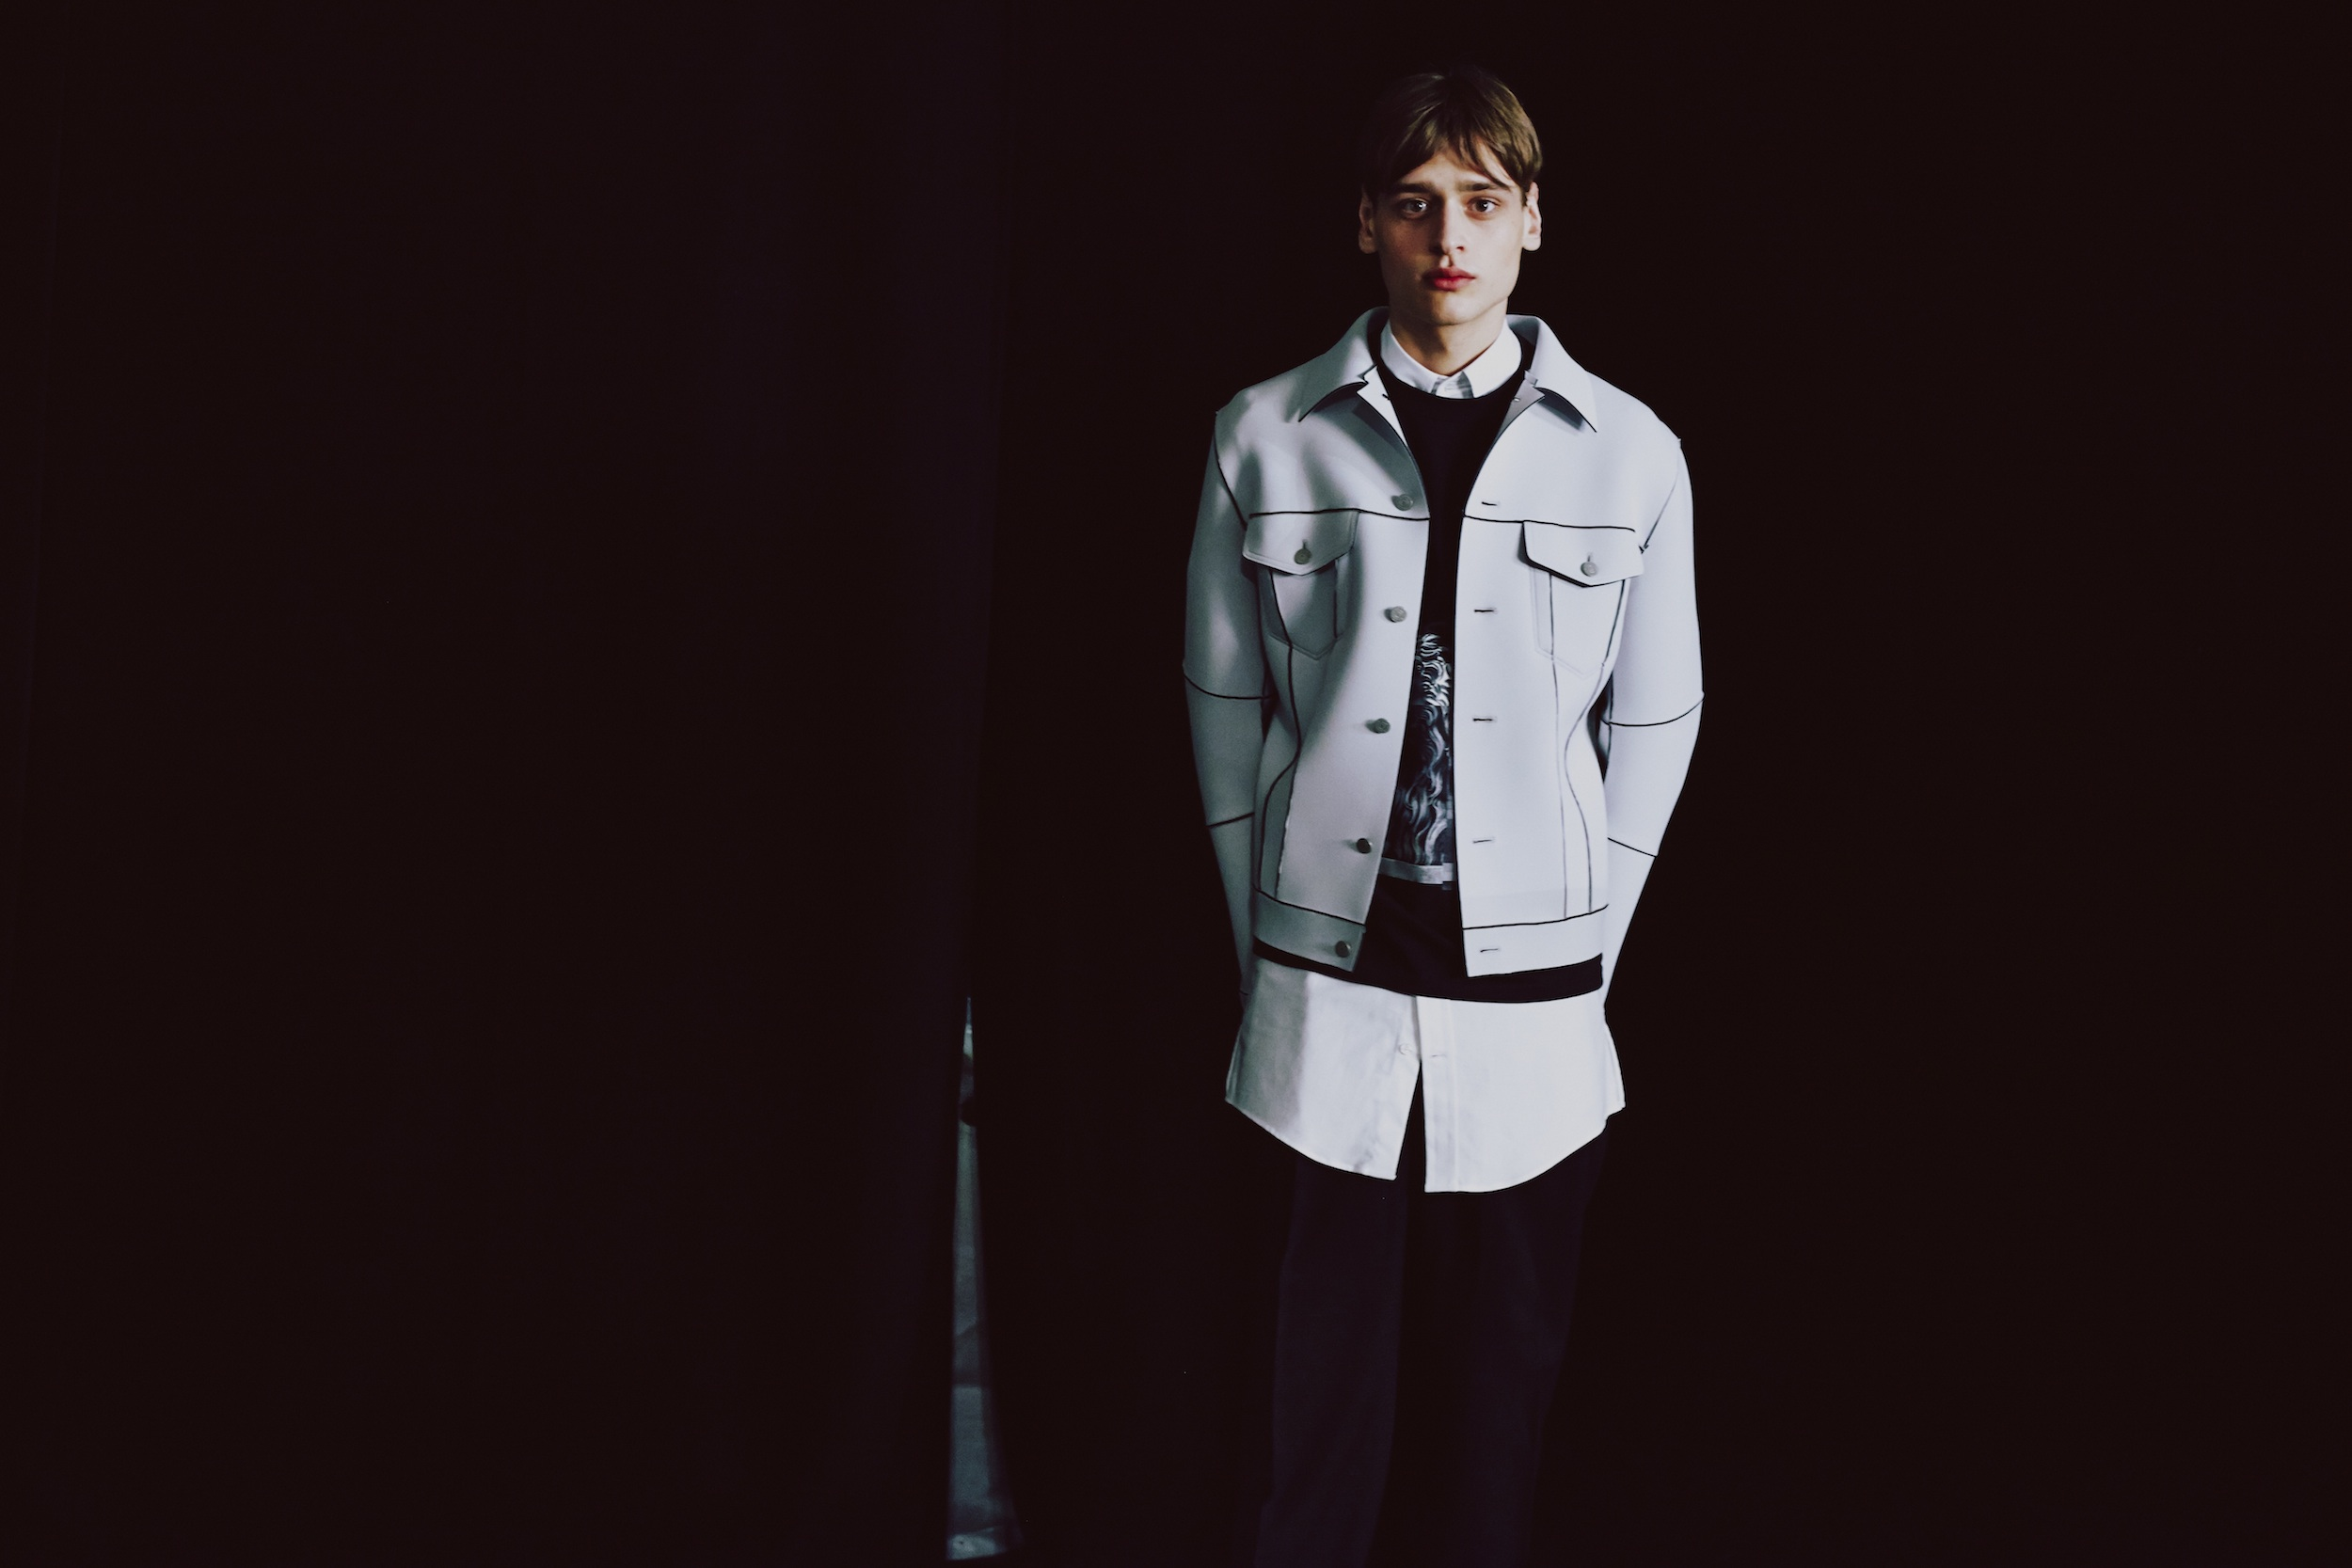 1 LCM AW14 HERO MAGAZINE CASLEY HAYFORD BACKSTAGE HARRY CARR FW14 Look